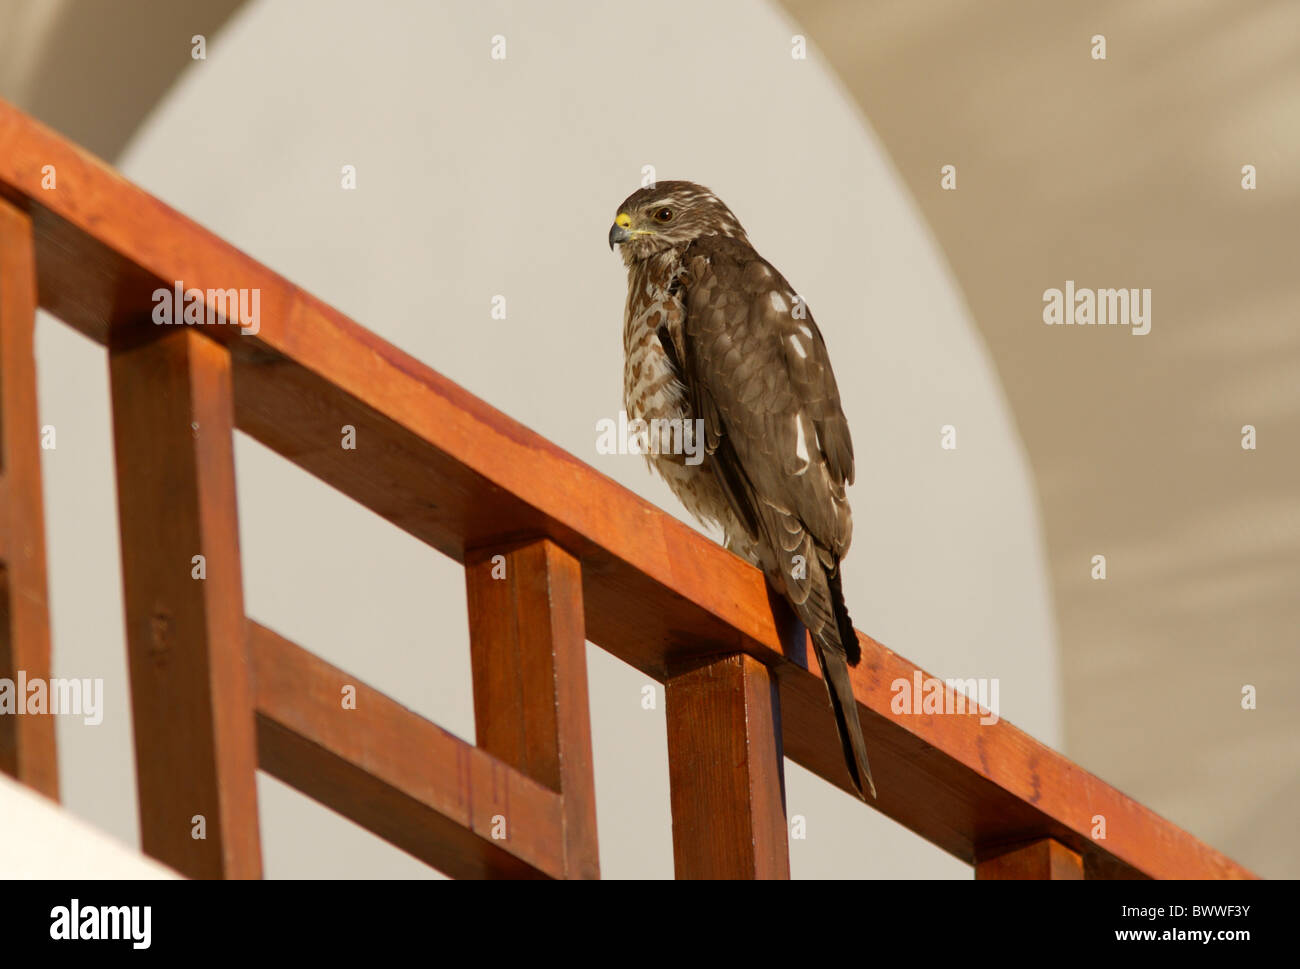 Levant Sparrowhawk (Accipiter brevipes) immature, perched on balcony, Sharm-El-Sheikh, Sinai Peninsula, Egypt, february - Stock Image